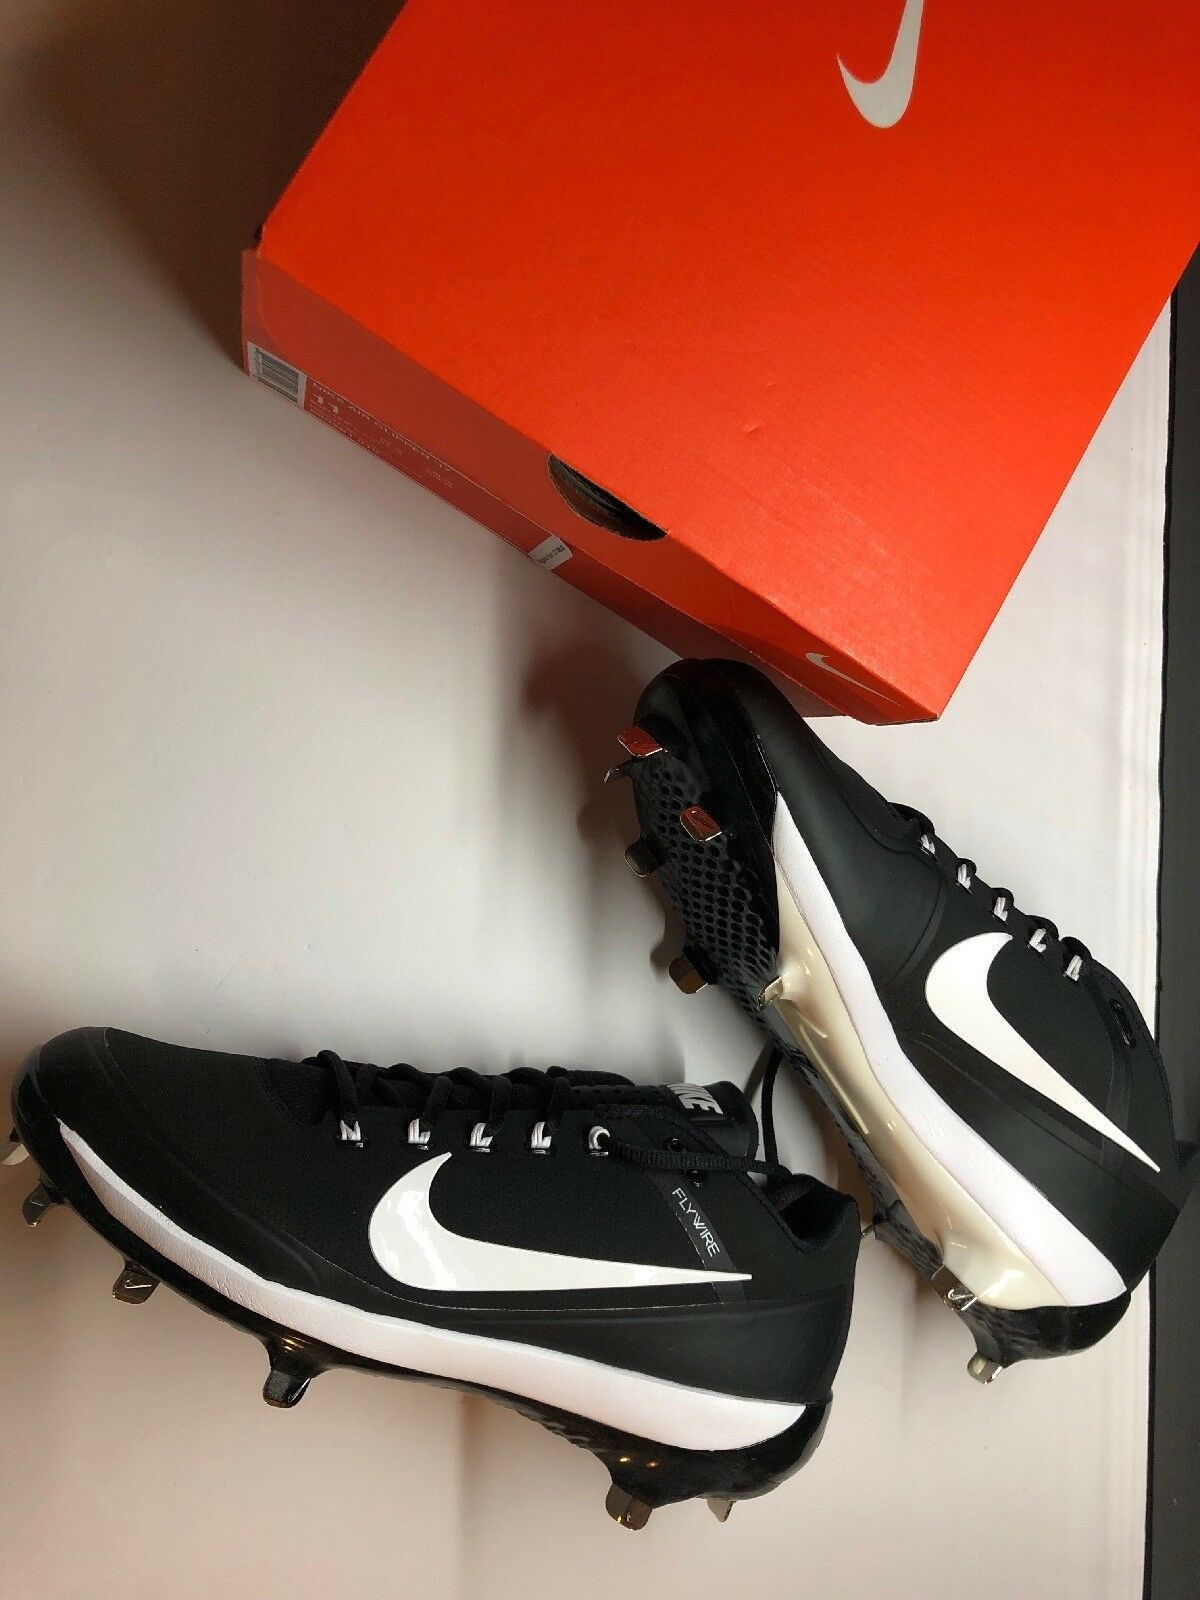 NIKE Men's Air Clipper 17 Flywire Metal Baseball Cleats - BLACK WHITE Size 10.5